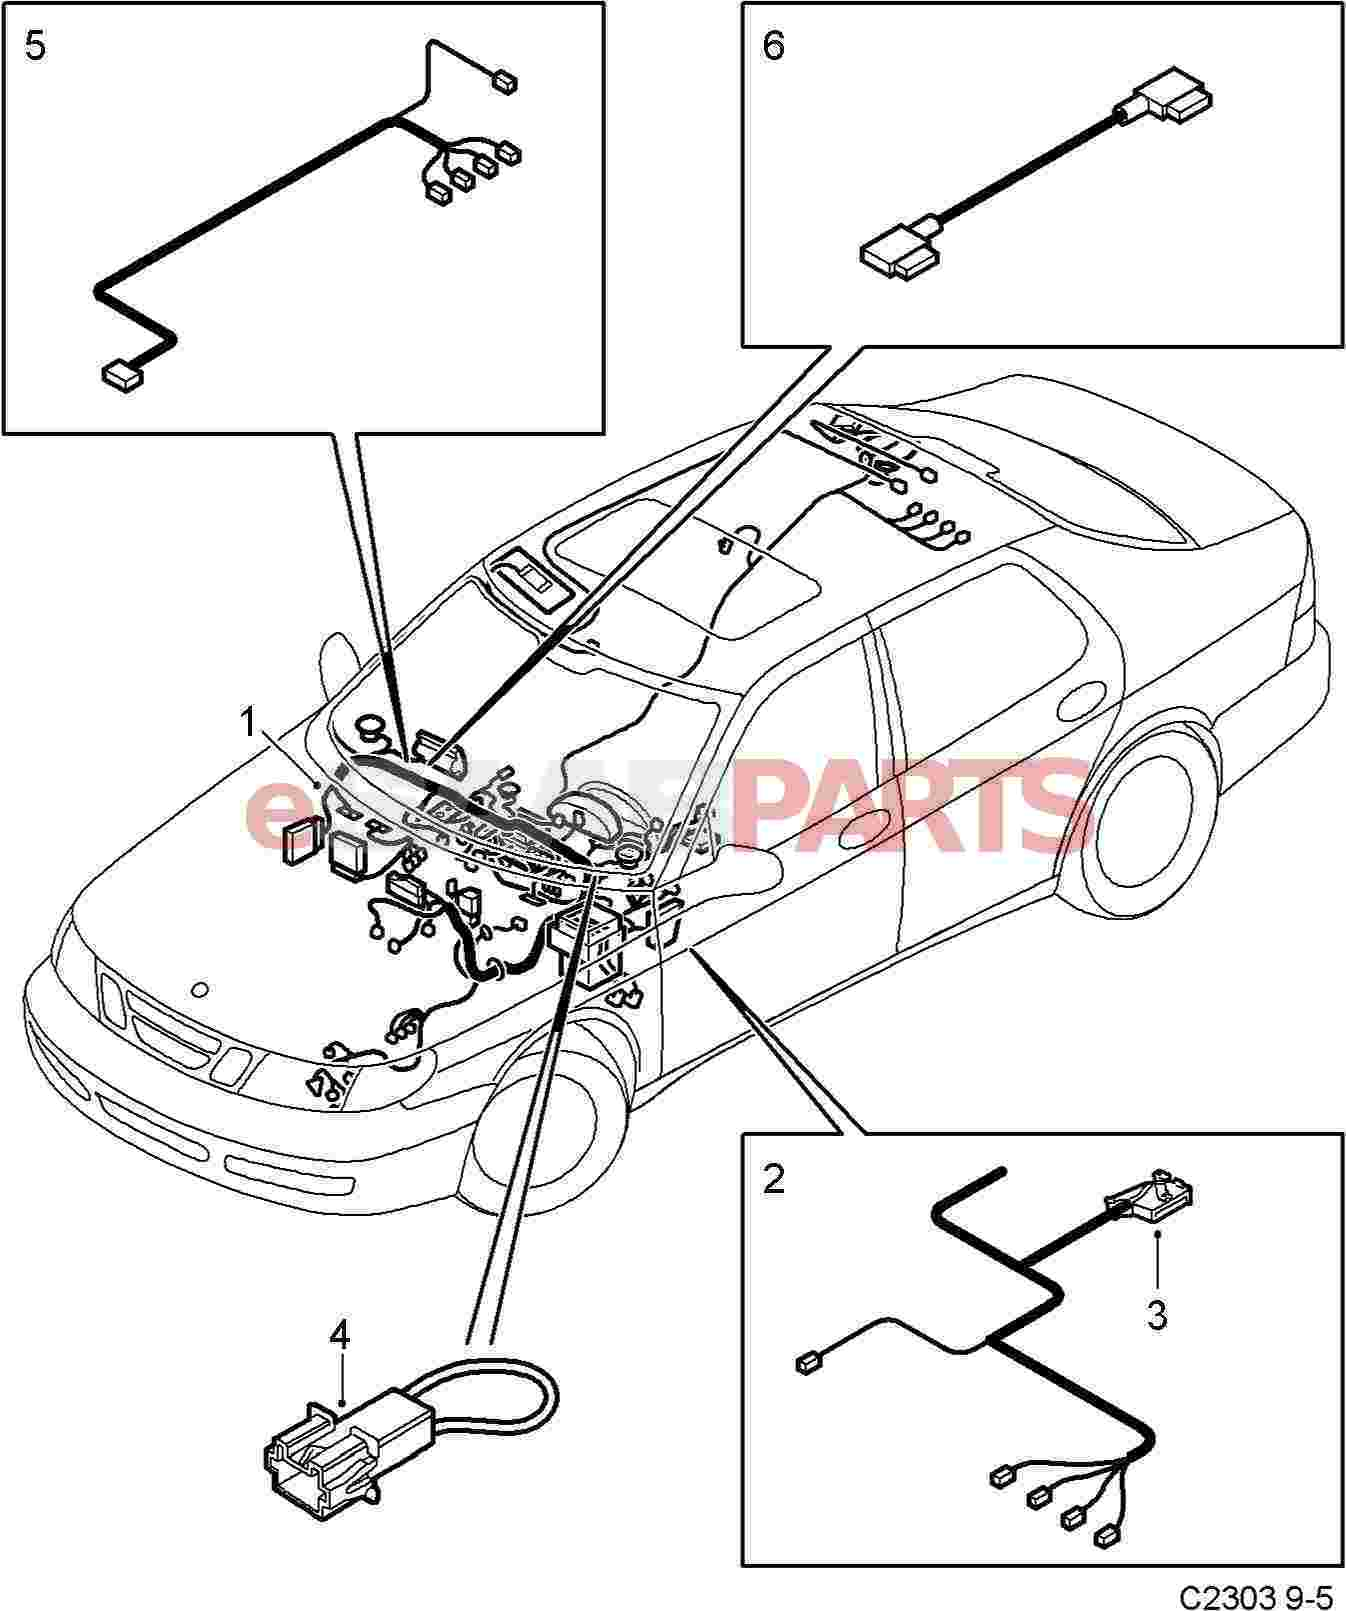 Diagram · esaabparts saab 9 5 9600 electrical parts wiring harness instrument panel